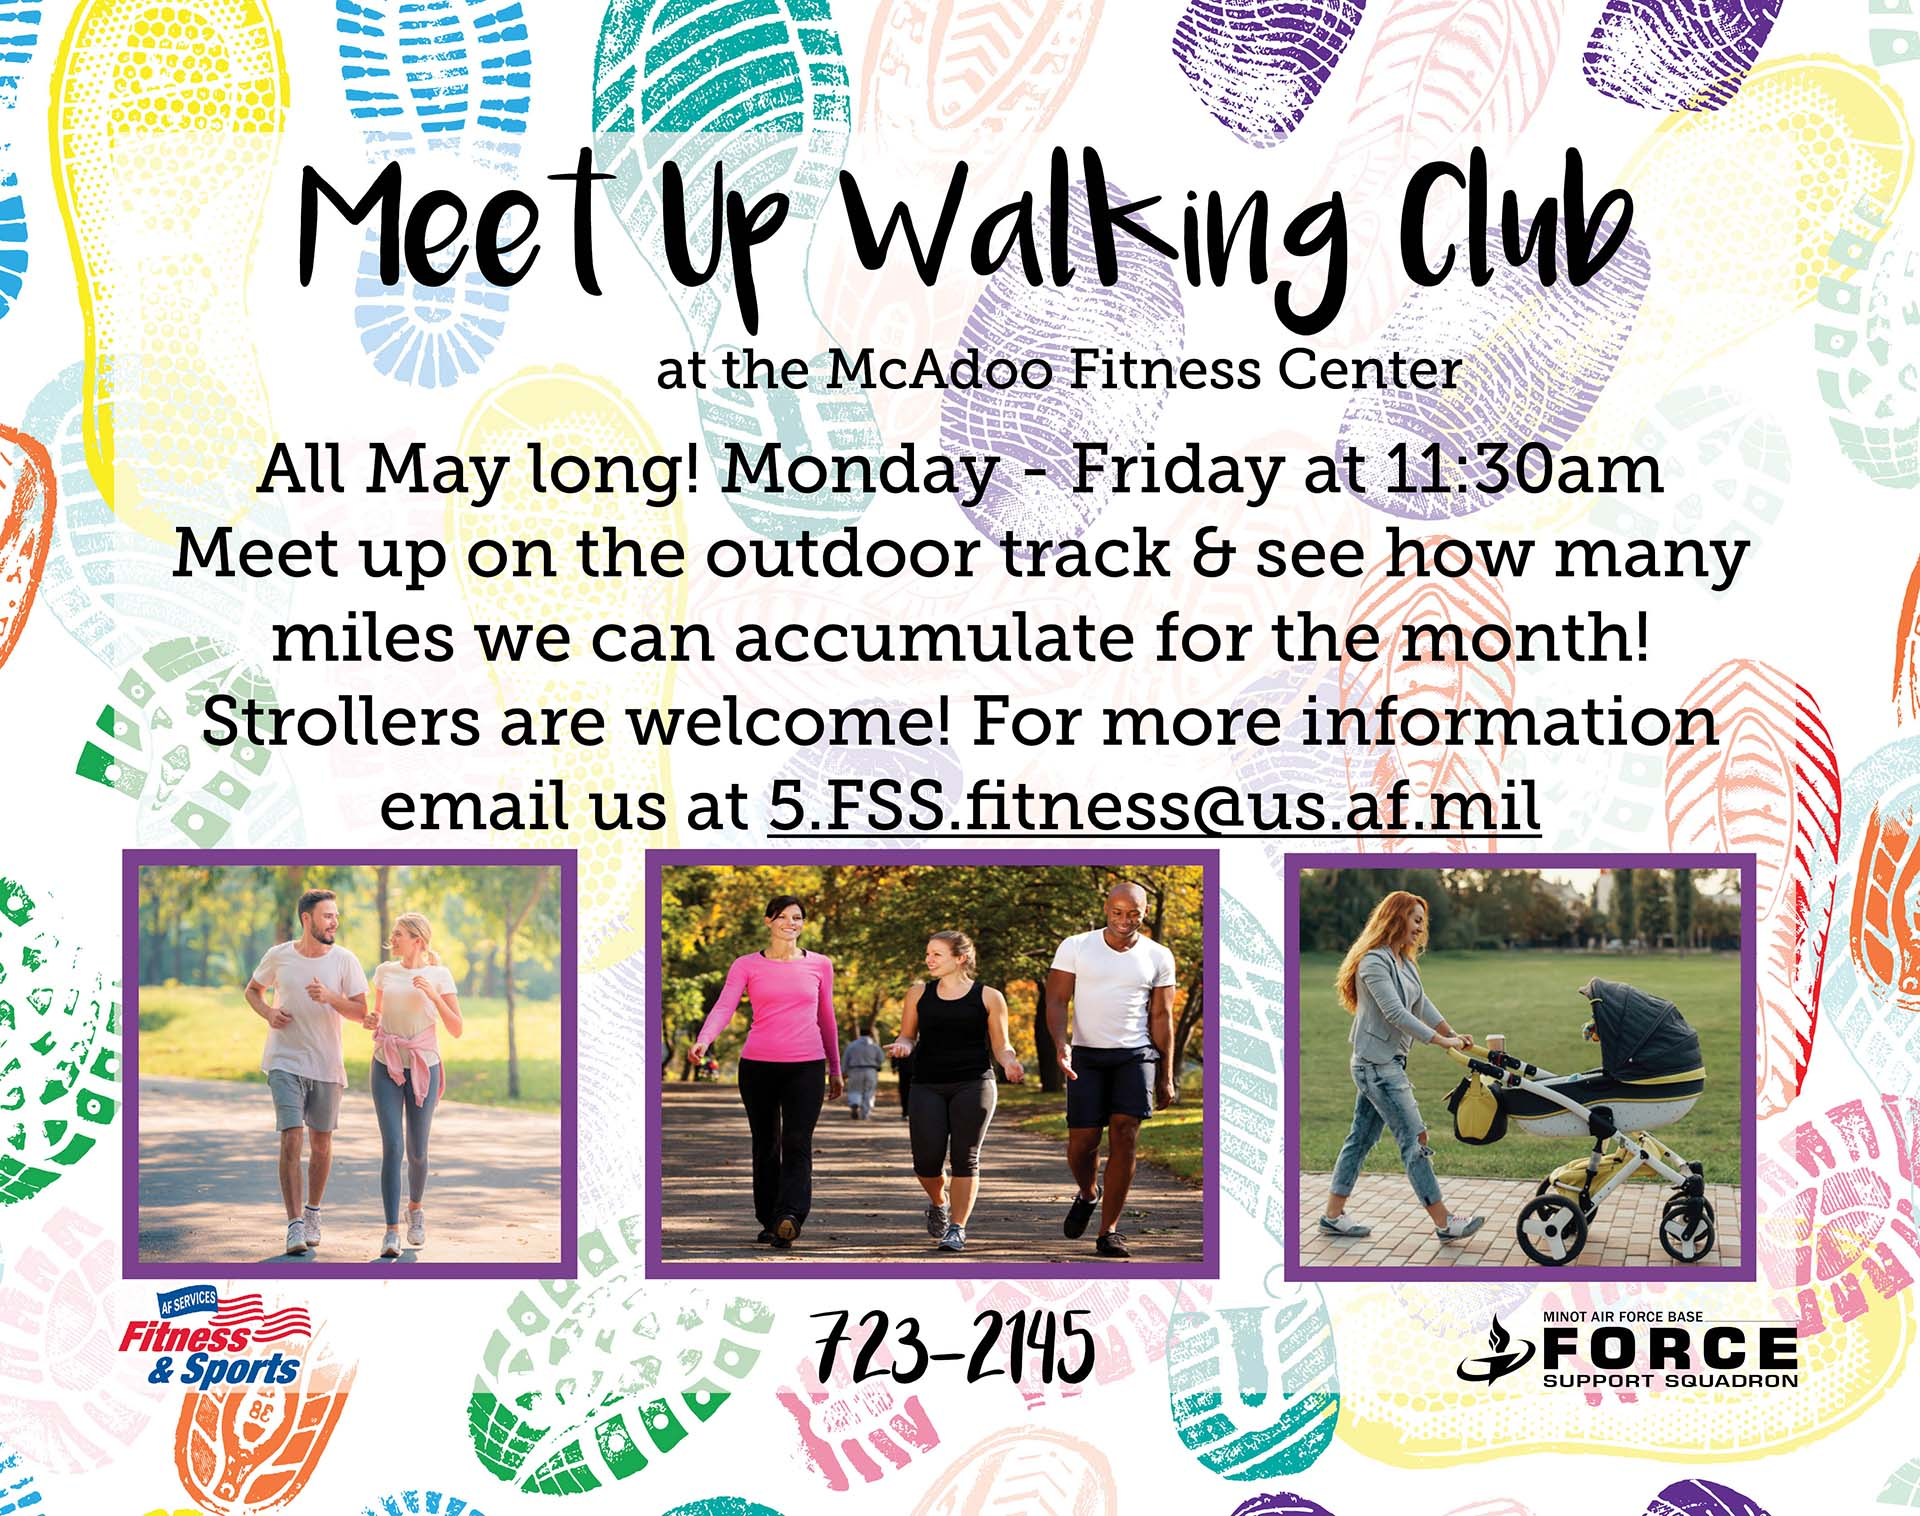 Meet Up Walking Club